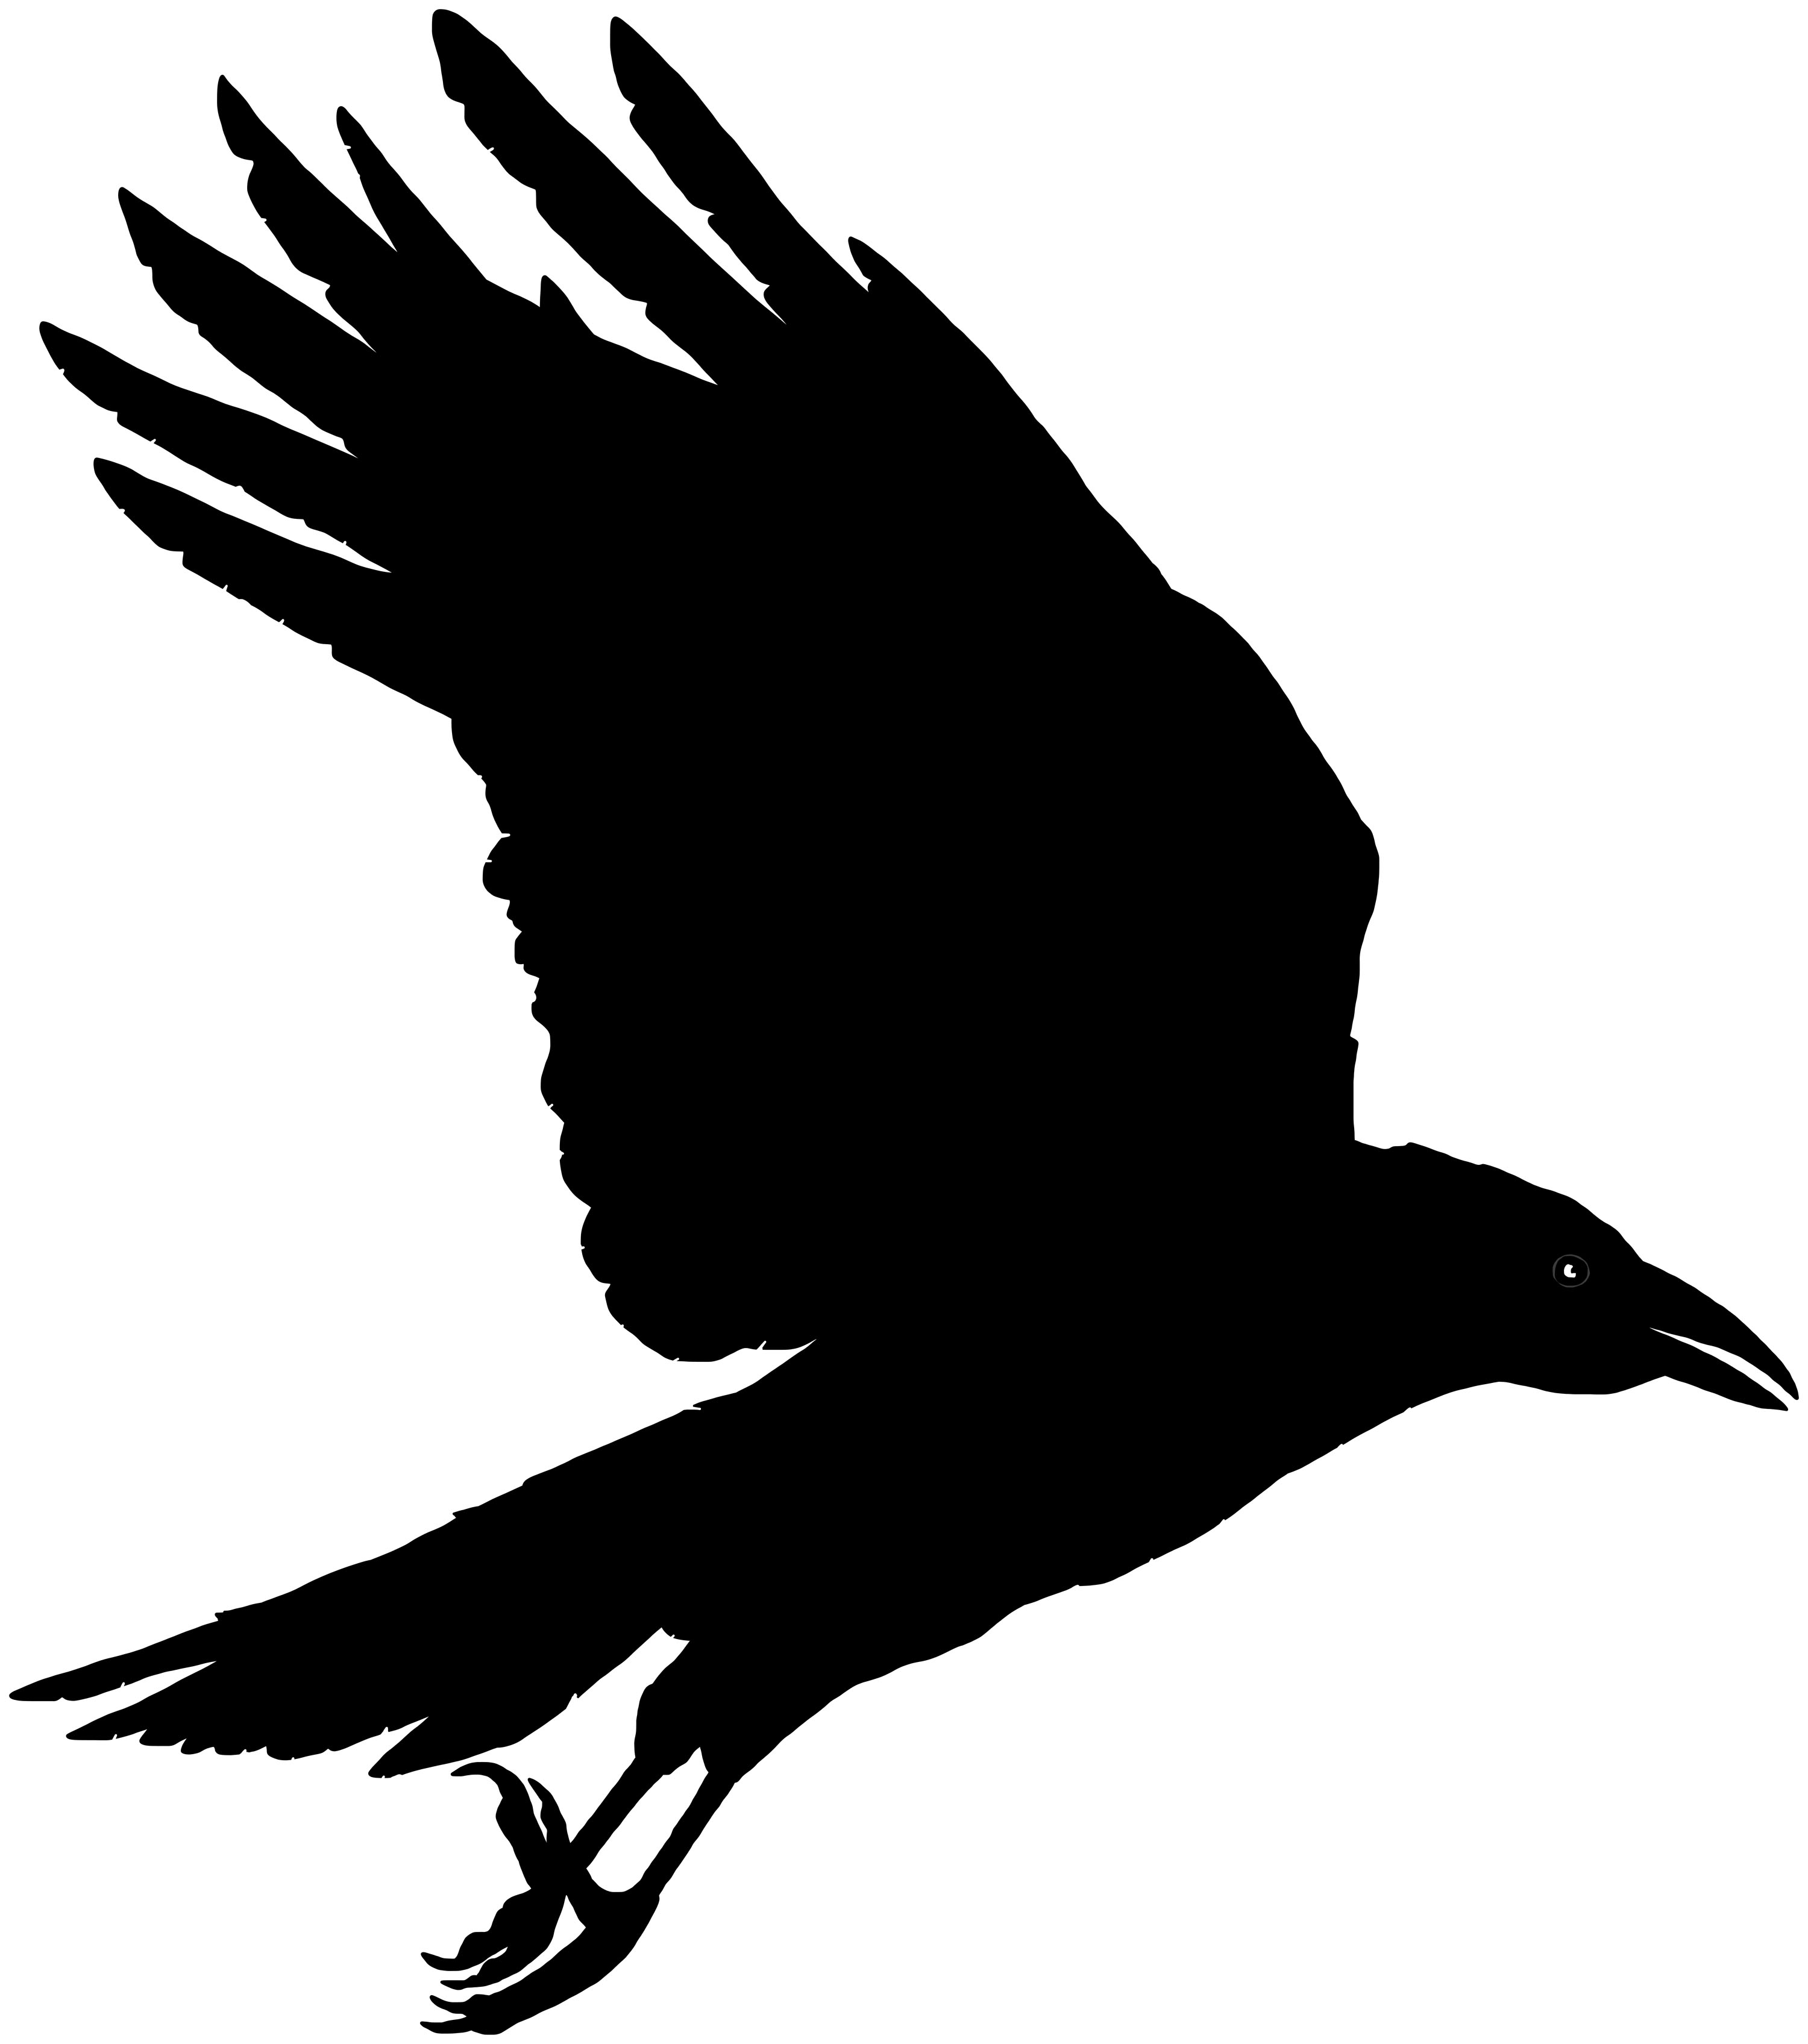 Clipart crows jpg transparent stock Free Crow Cliparts, Download Free Clip Art, Free Clip Art on Clipart ... jpg transparent stock